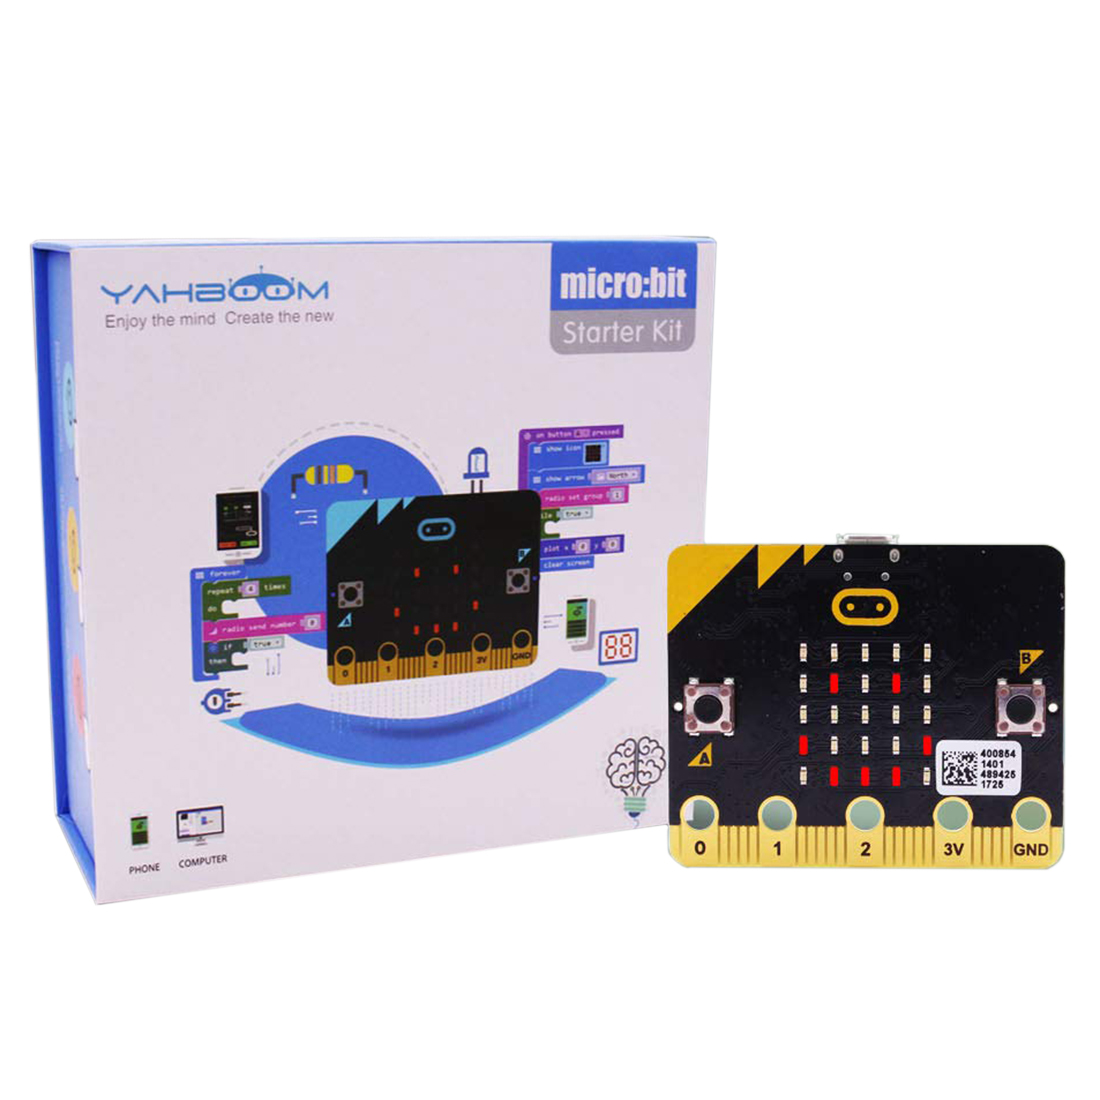 Micro:bit Kit Starter Learning Educational Kit Micro Bit Board Graphical Programmable STEM Toys With Guidance Manual For Kids